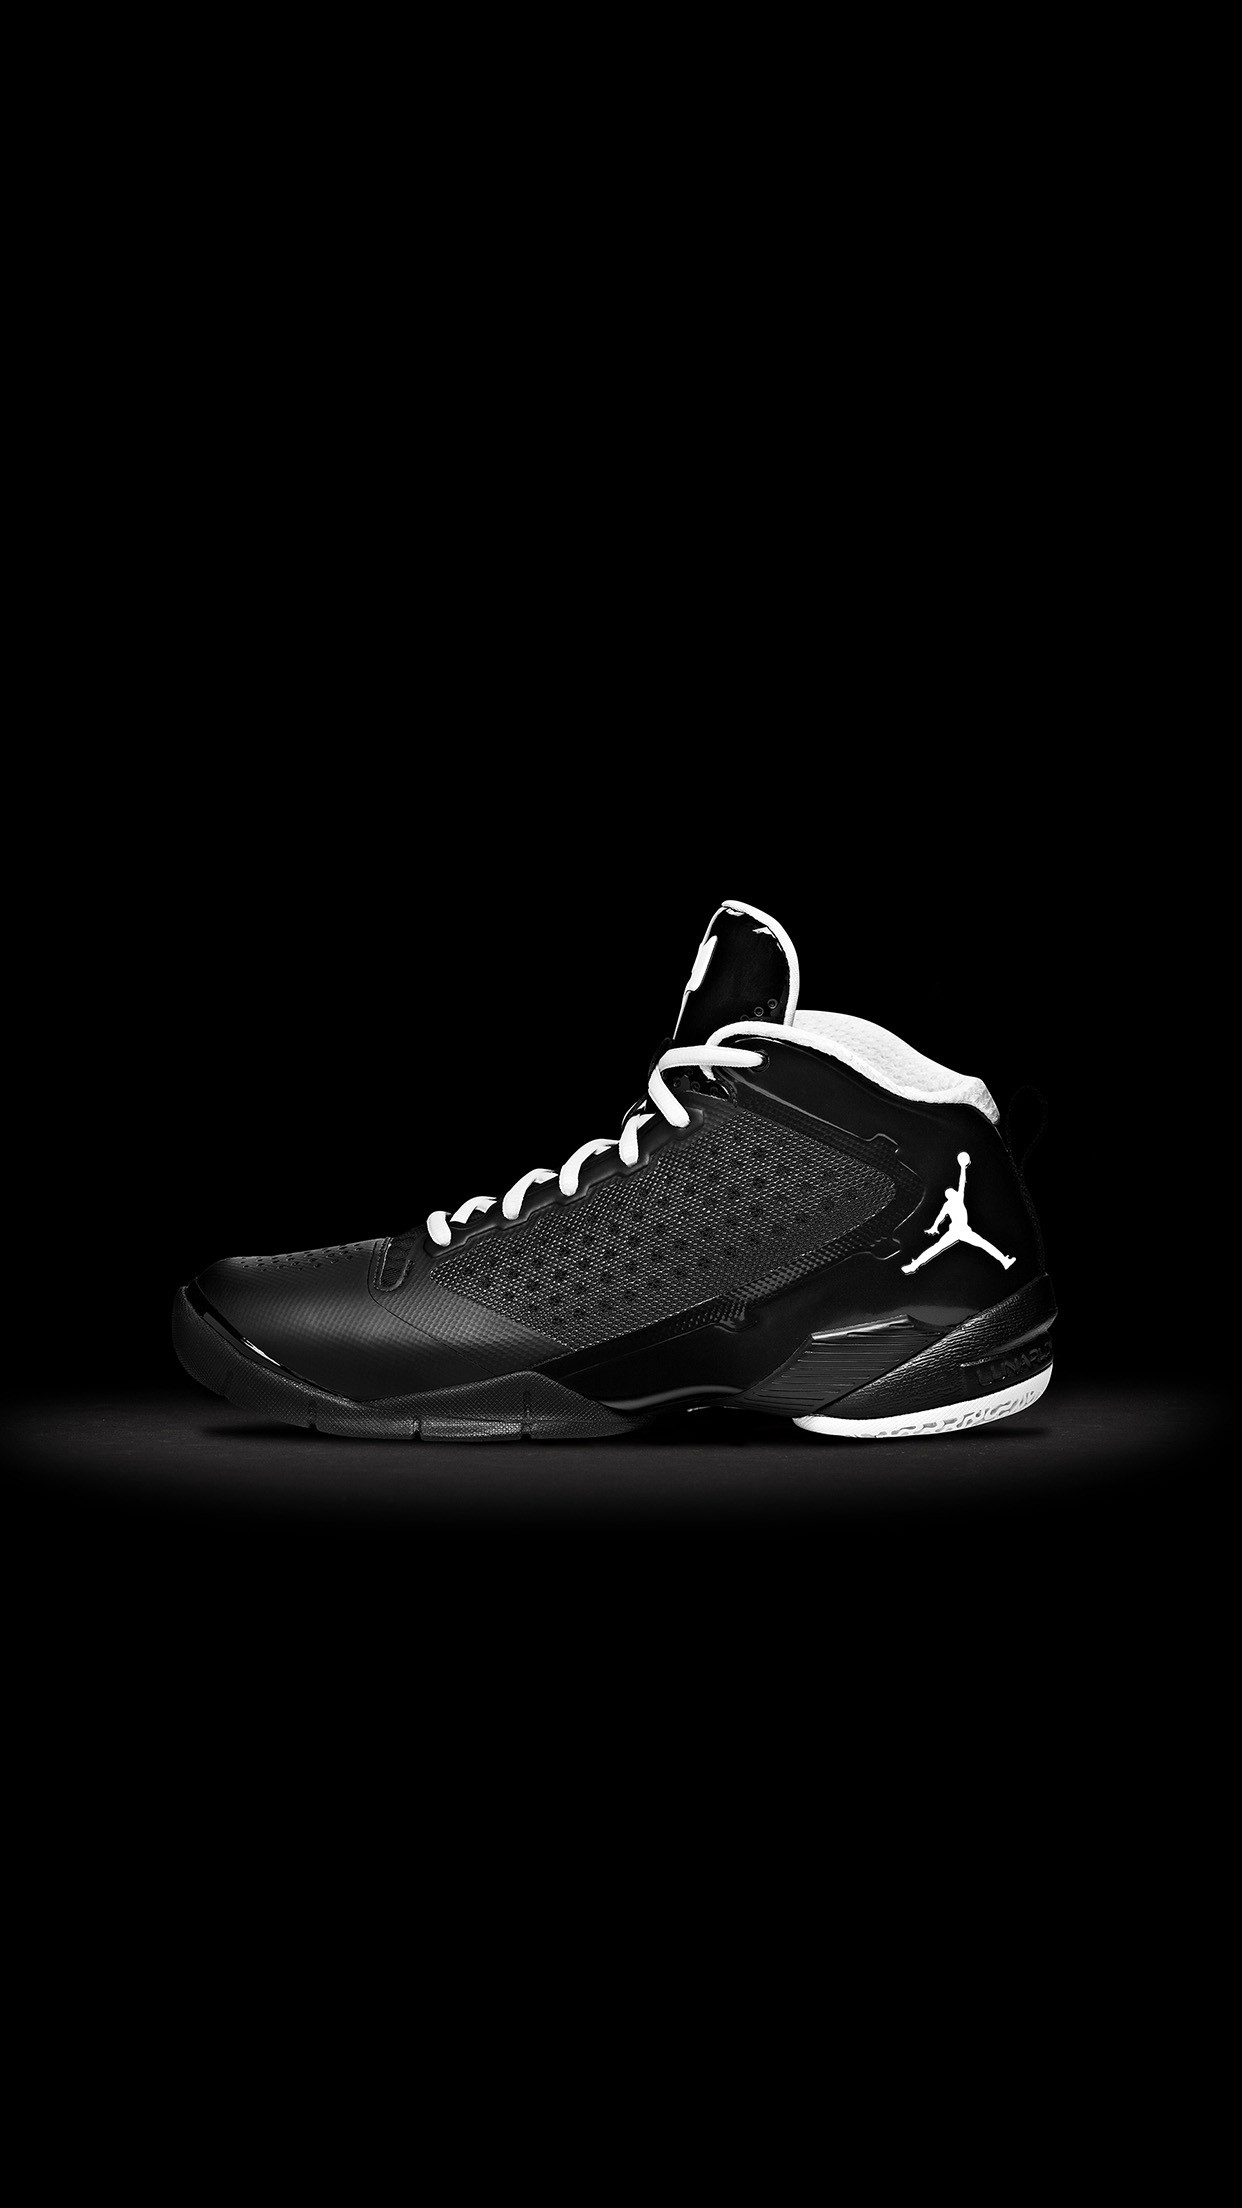 1242x2208 Jordan Fly Wade 2 Black Android Wallpaper ...